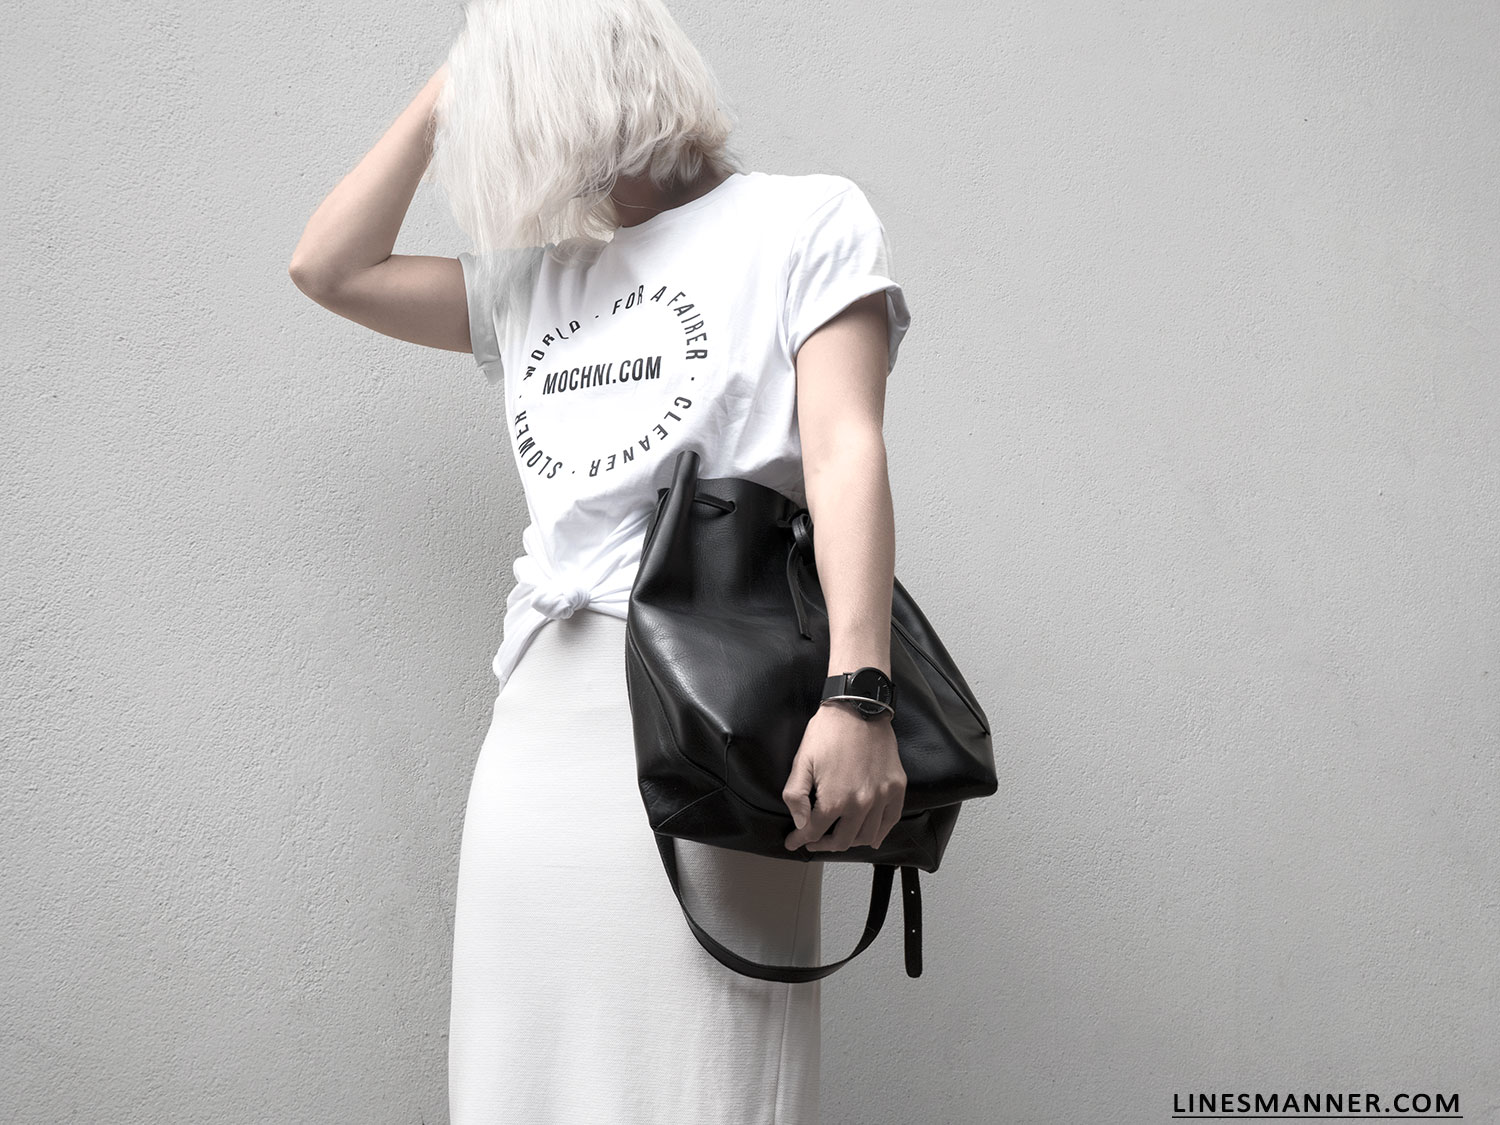 Lines-Manner-Mochni-Slow_Fashion_Plateform-Sustainable-Eco_Fashion-Awareness-Tee-Fairer-World-Conscious-Essentials-Minimal-Monochrome-Quality-Organic-11